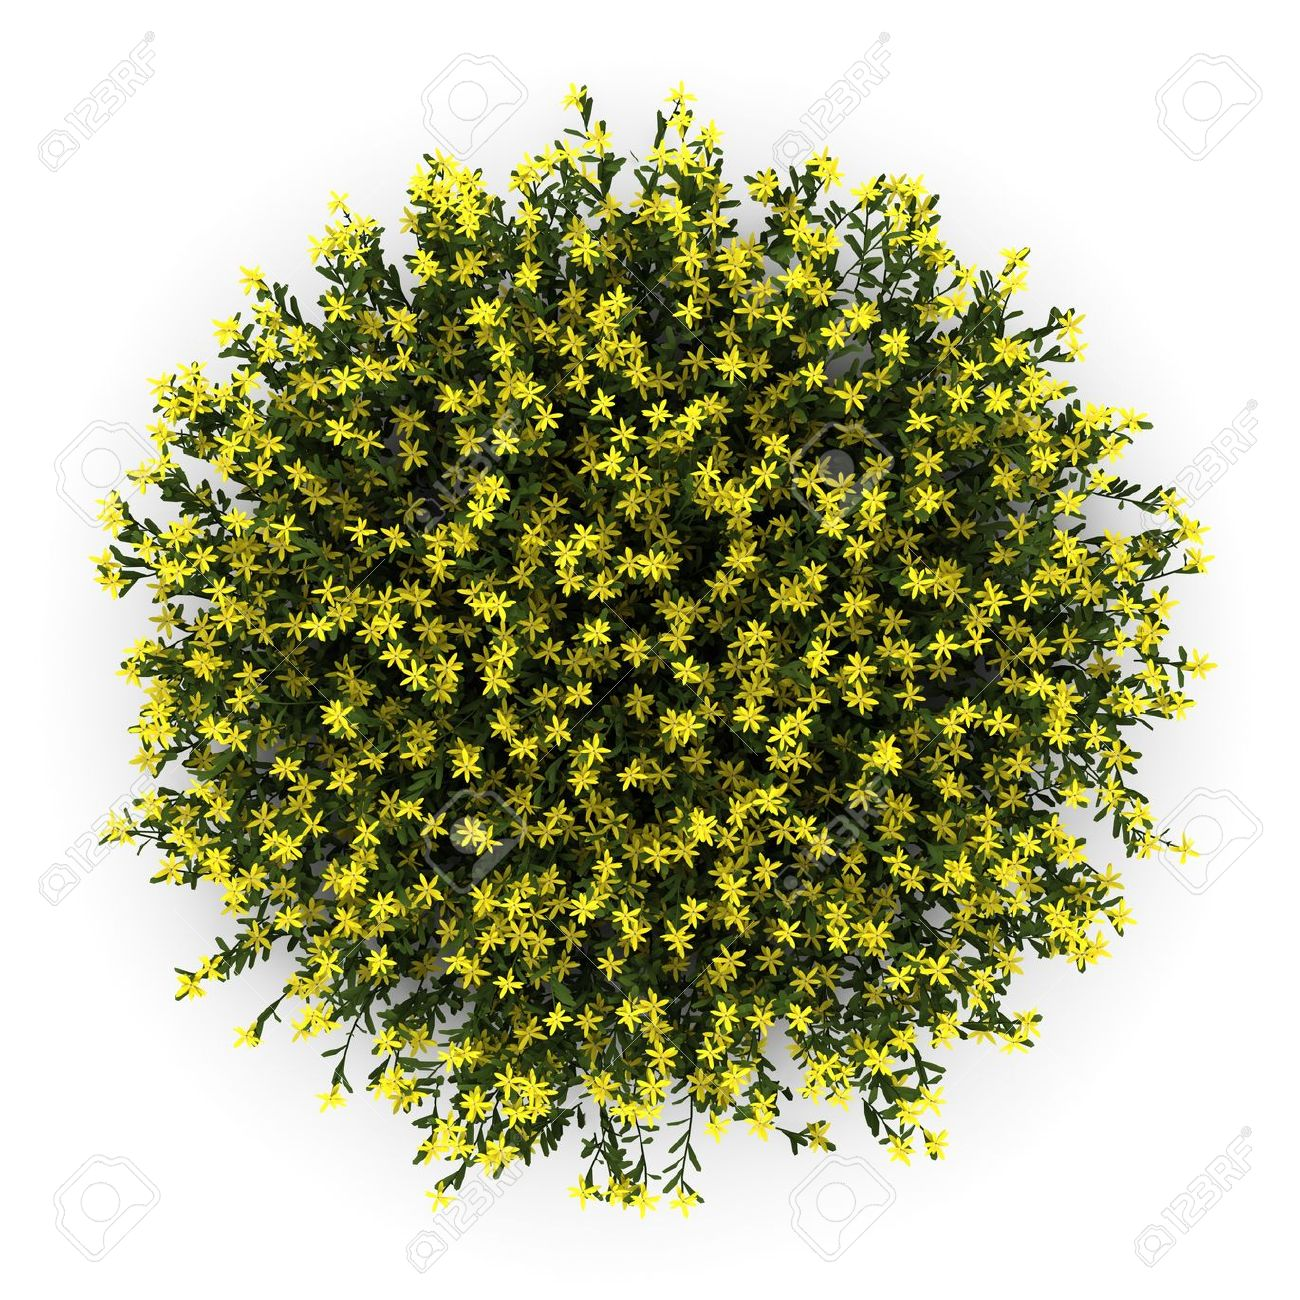 Top View Of Broom Flowers Isolated On White Background Stock Photo